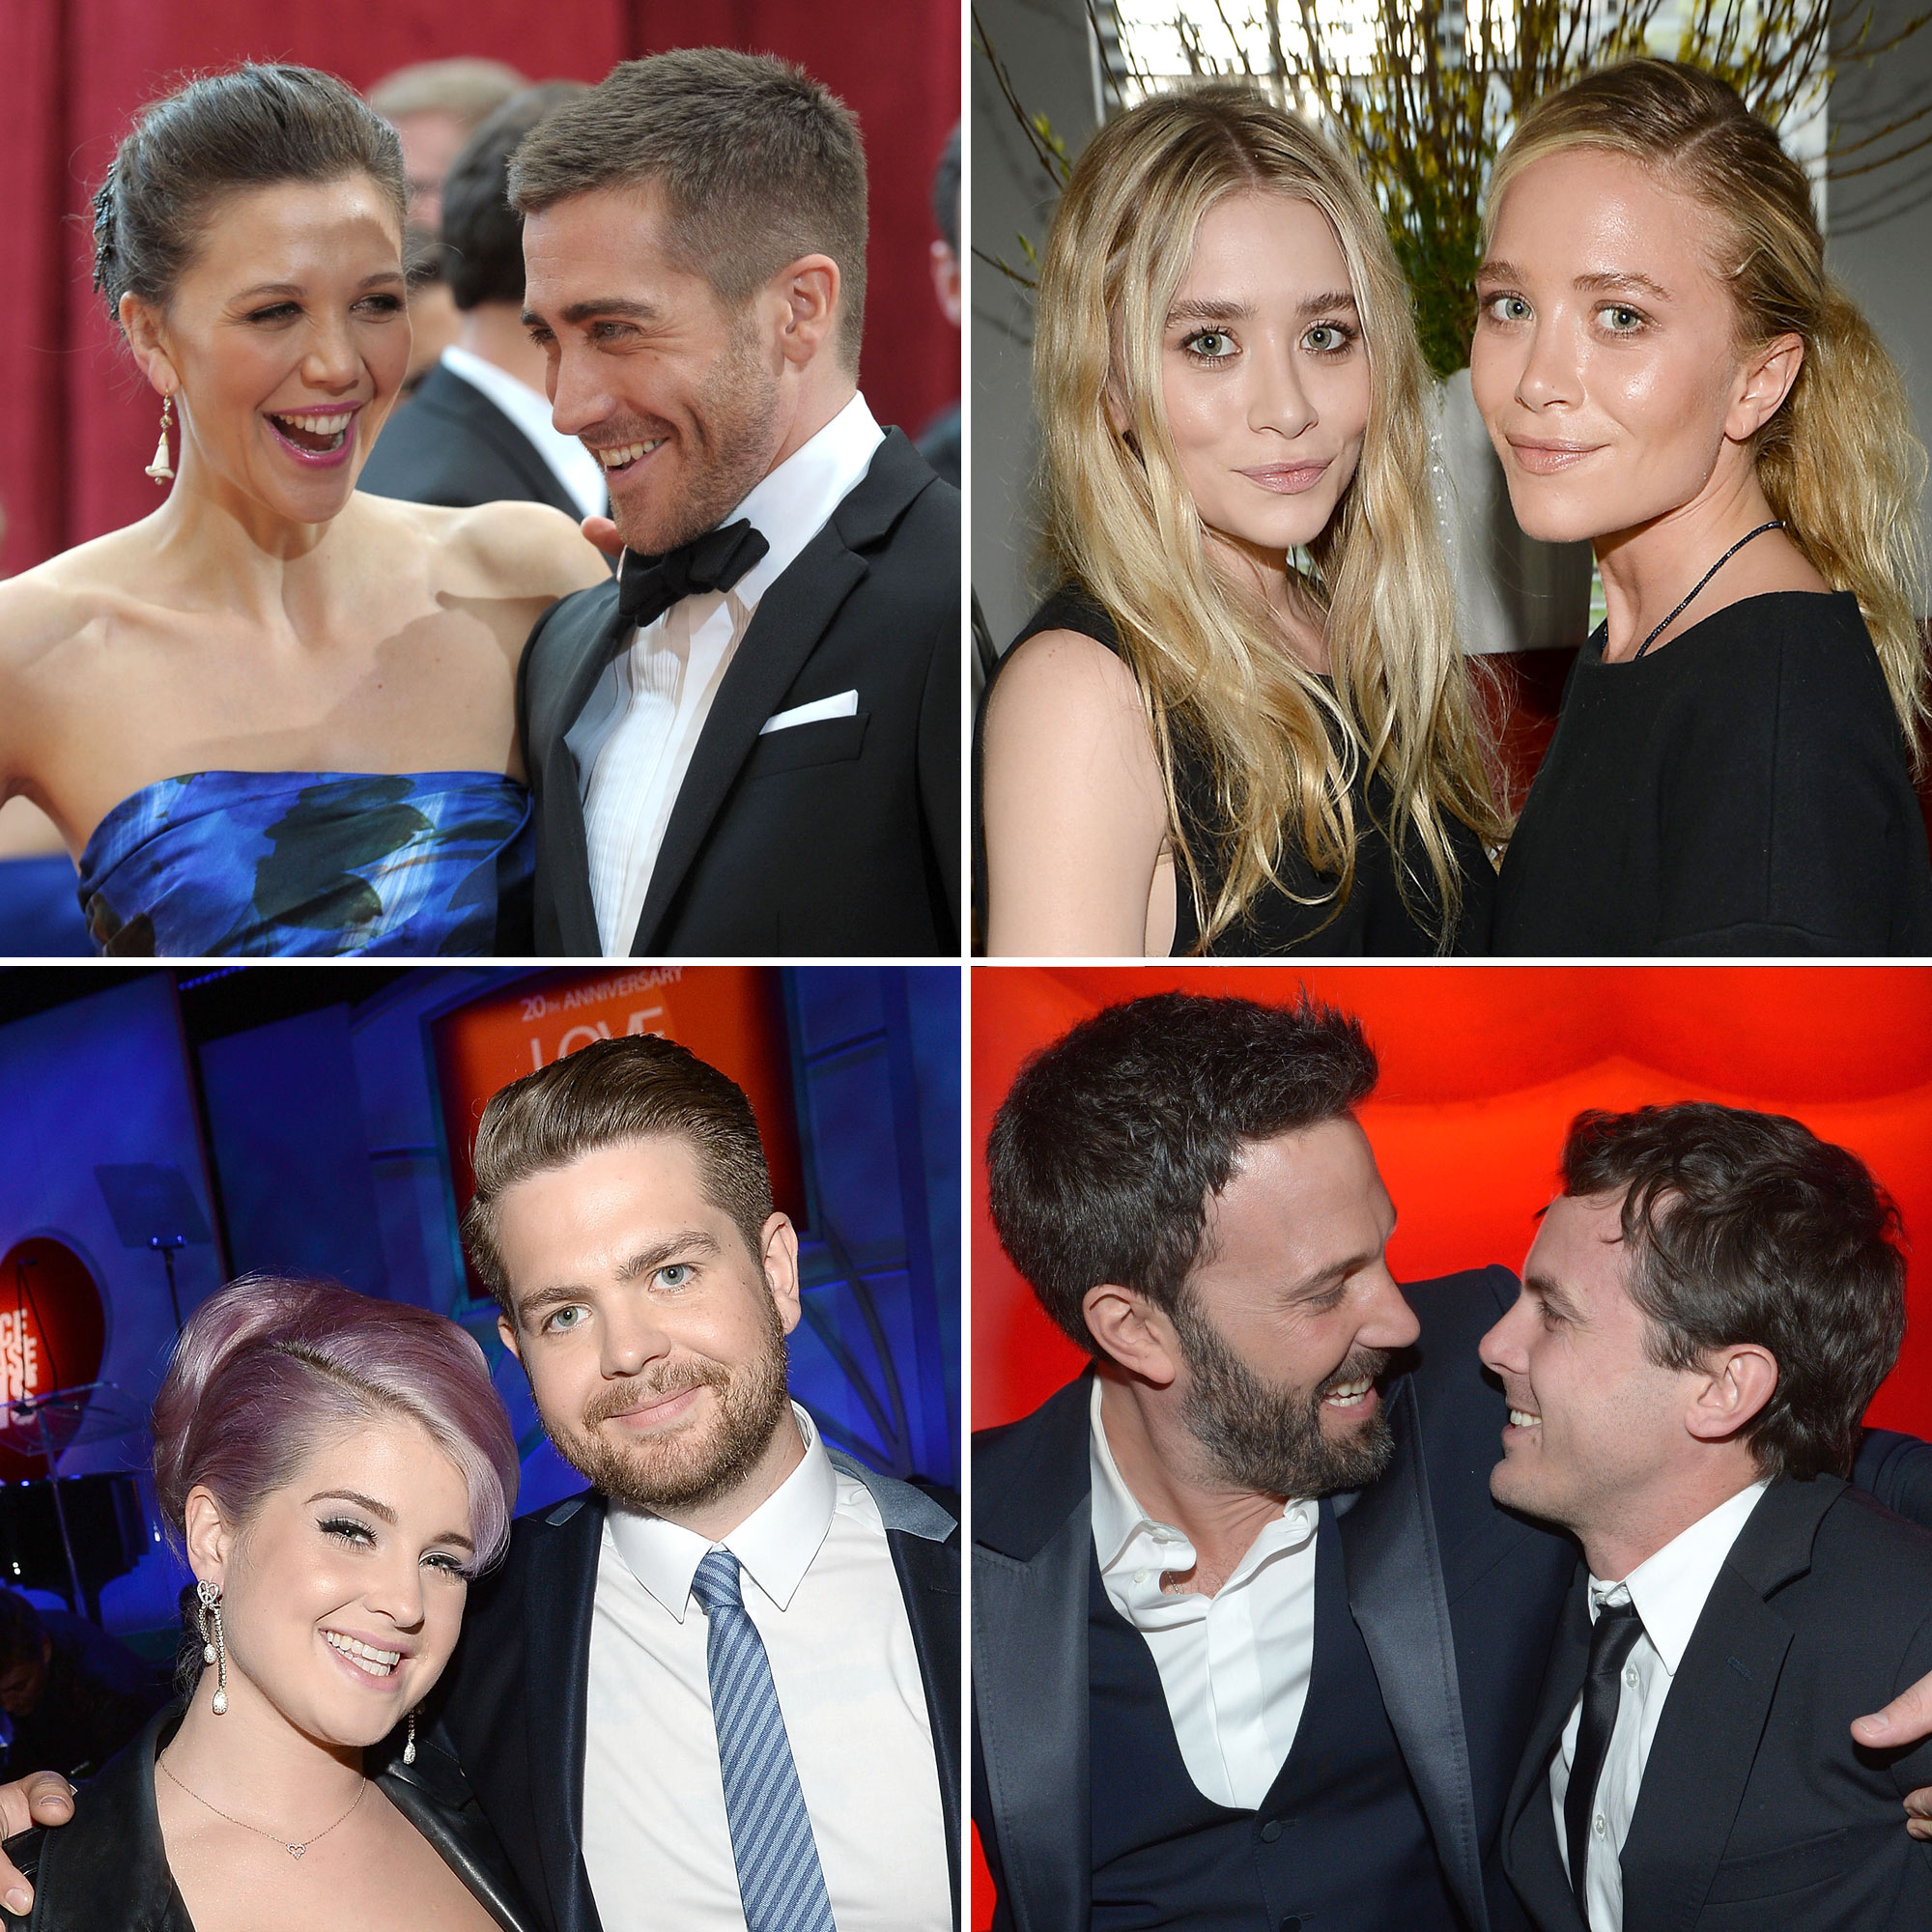 Celebrity Siblings Gallery - From Maggie and Jake Gyllenhaal to the Olsen twins, take a closer look at some of Us Weekly's favorite star siblings! Related: Celebriteens -- Do They Look More Like Mom or Dad?